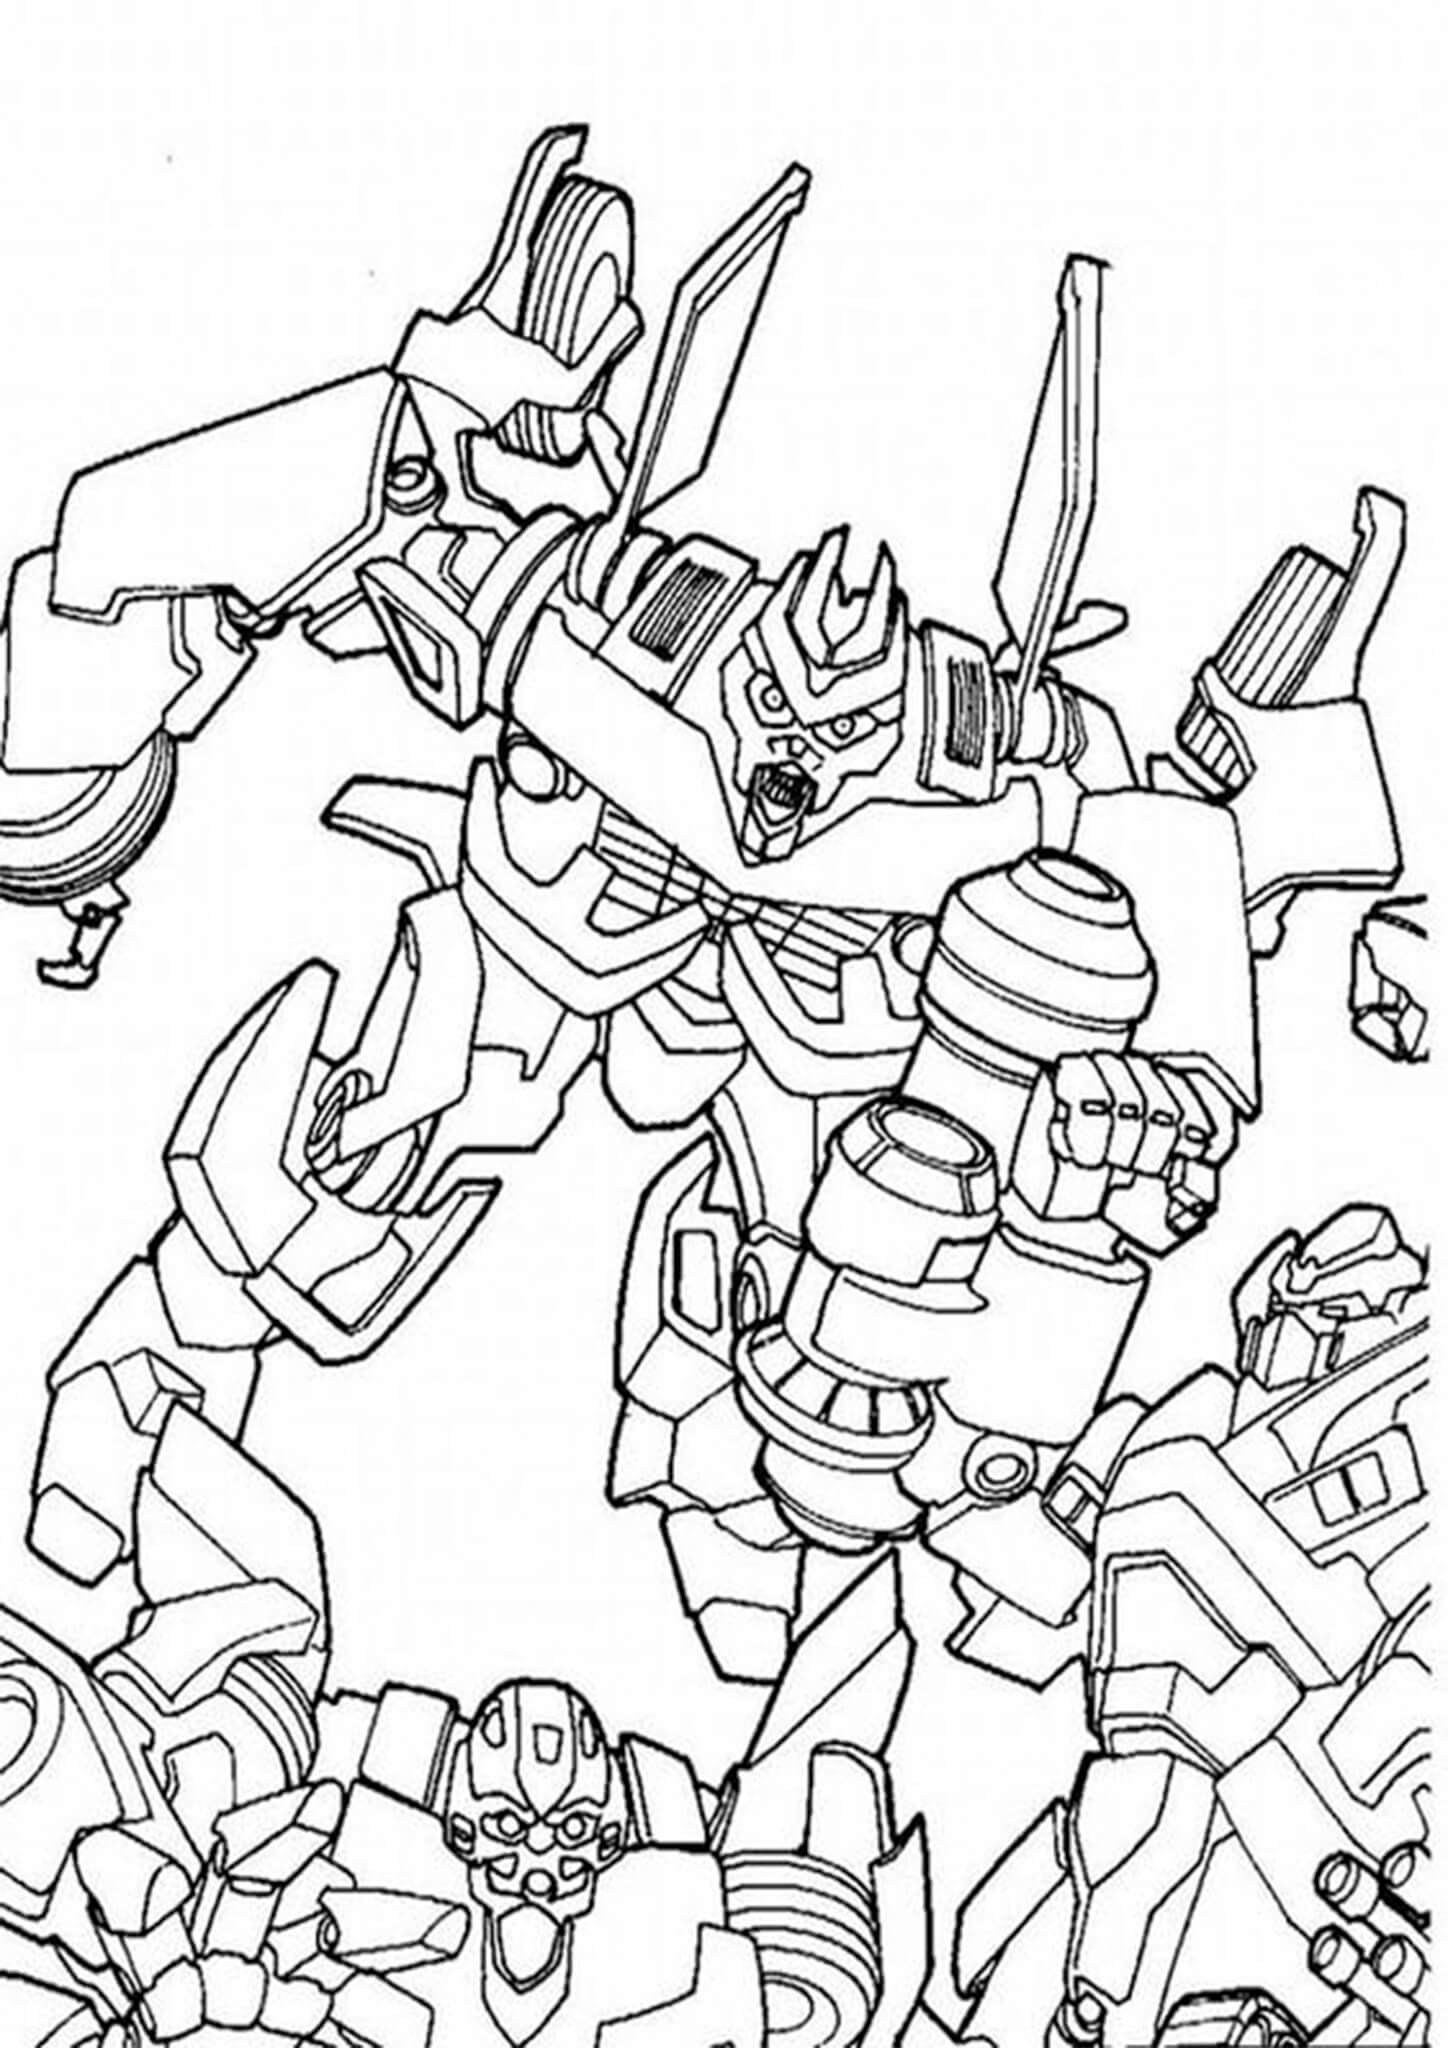 transformer for coloring free easy to print transformers coloring pages tulamama for coloring transformer